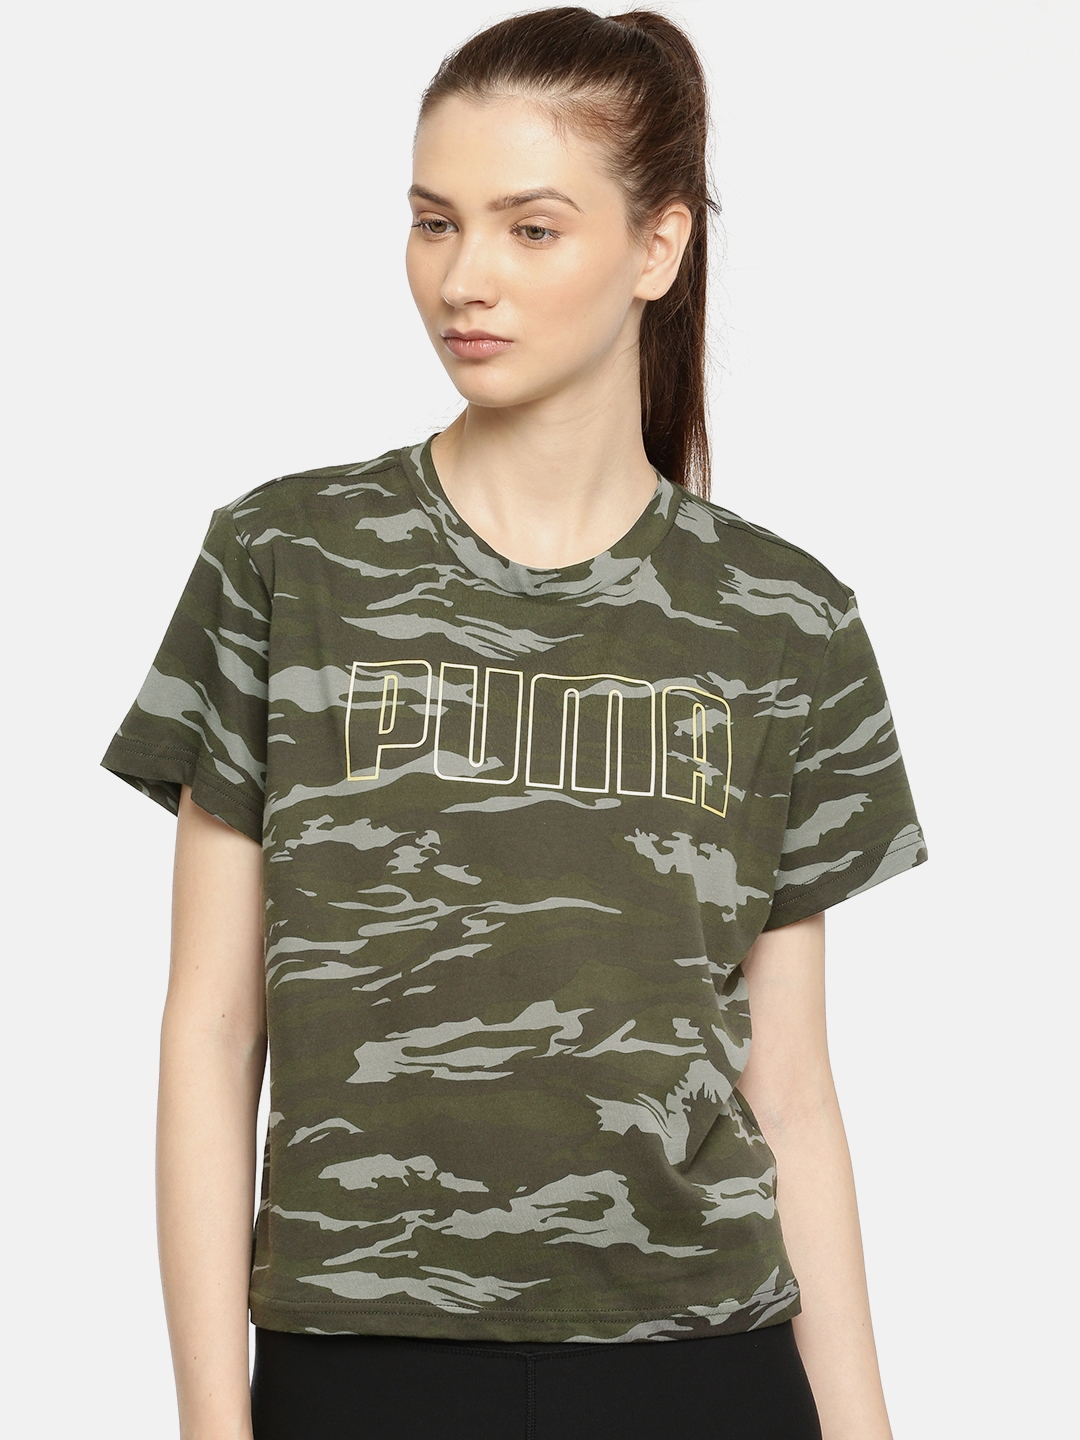 32f2be00a Buy Puma Women Olive Green Printed Camo AOP Tee Forest Night AOP T ...